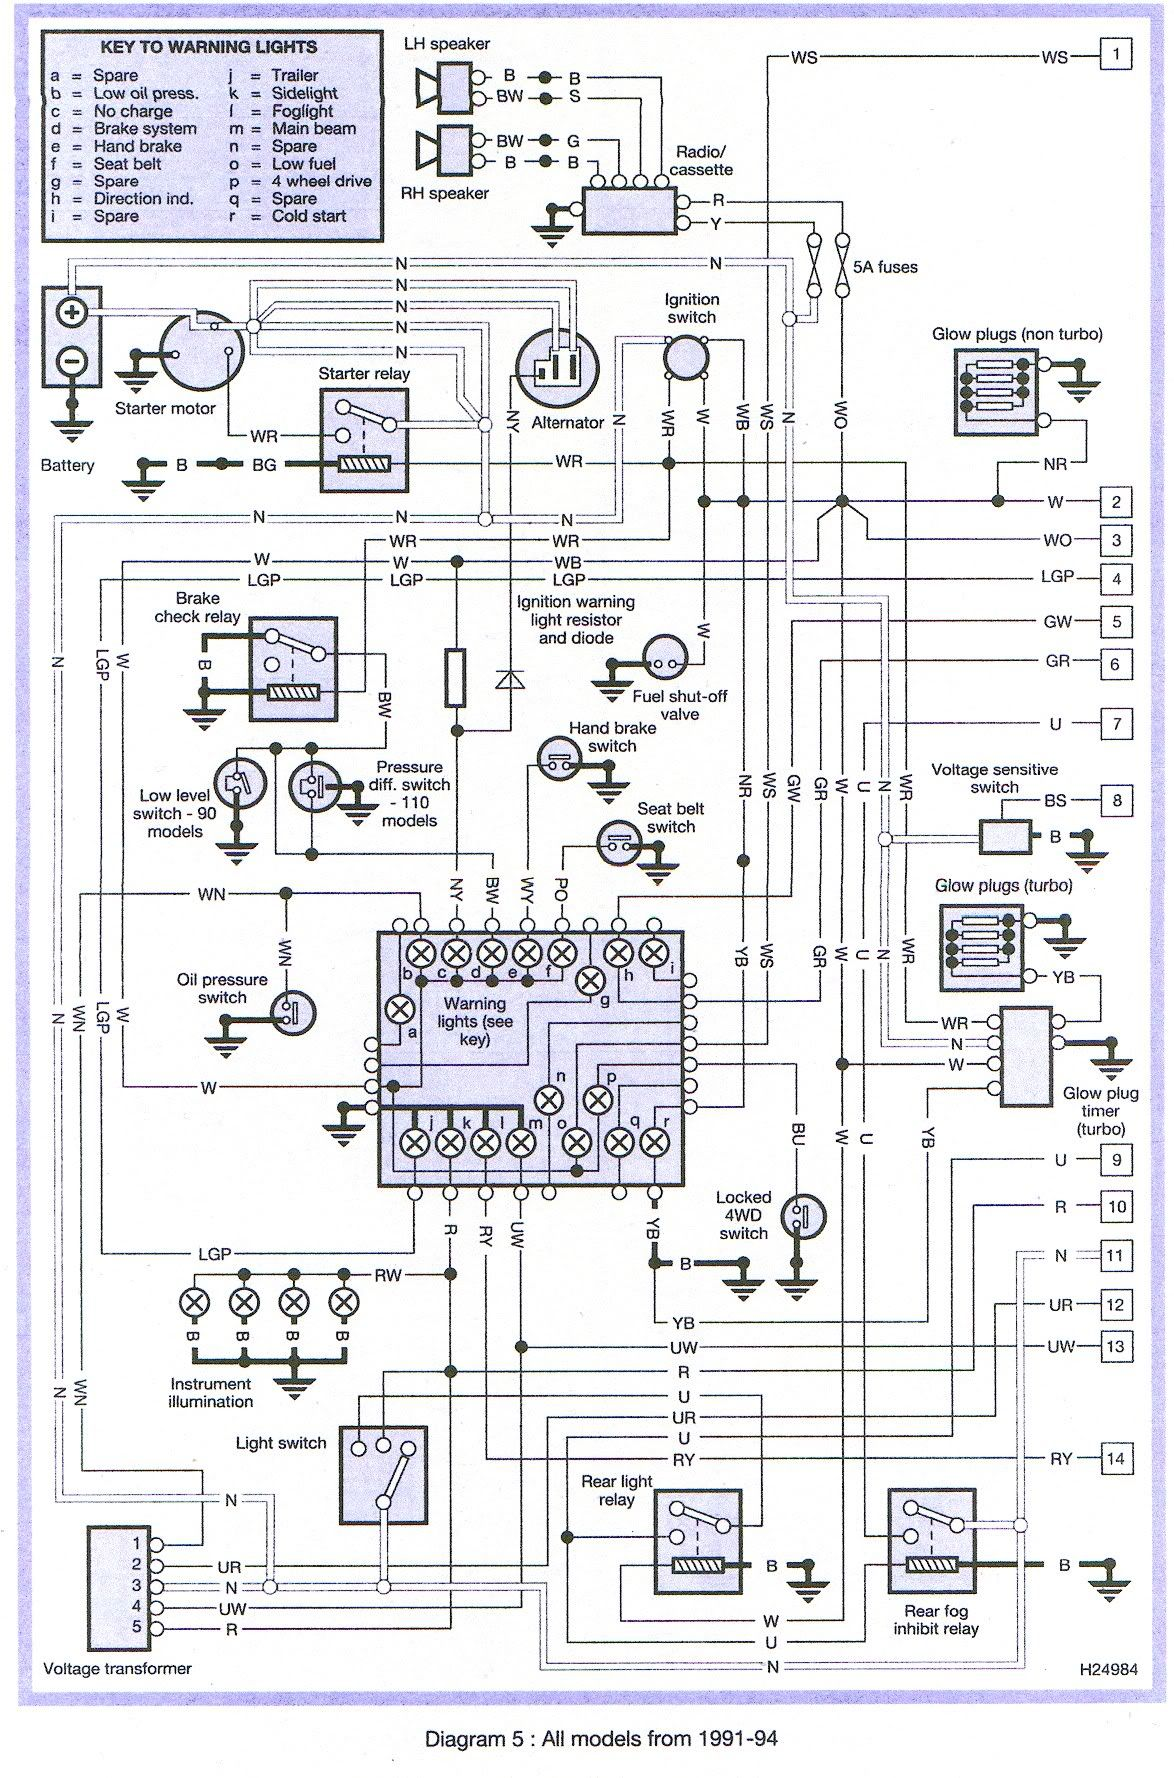 medium resolution of land rover discovery wiring diagram manual repair with engine land rover discovery wiring diagram manual repair